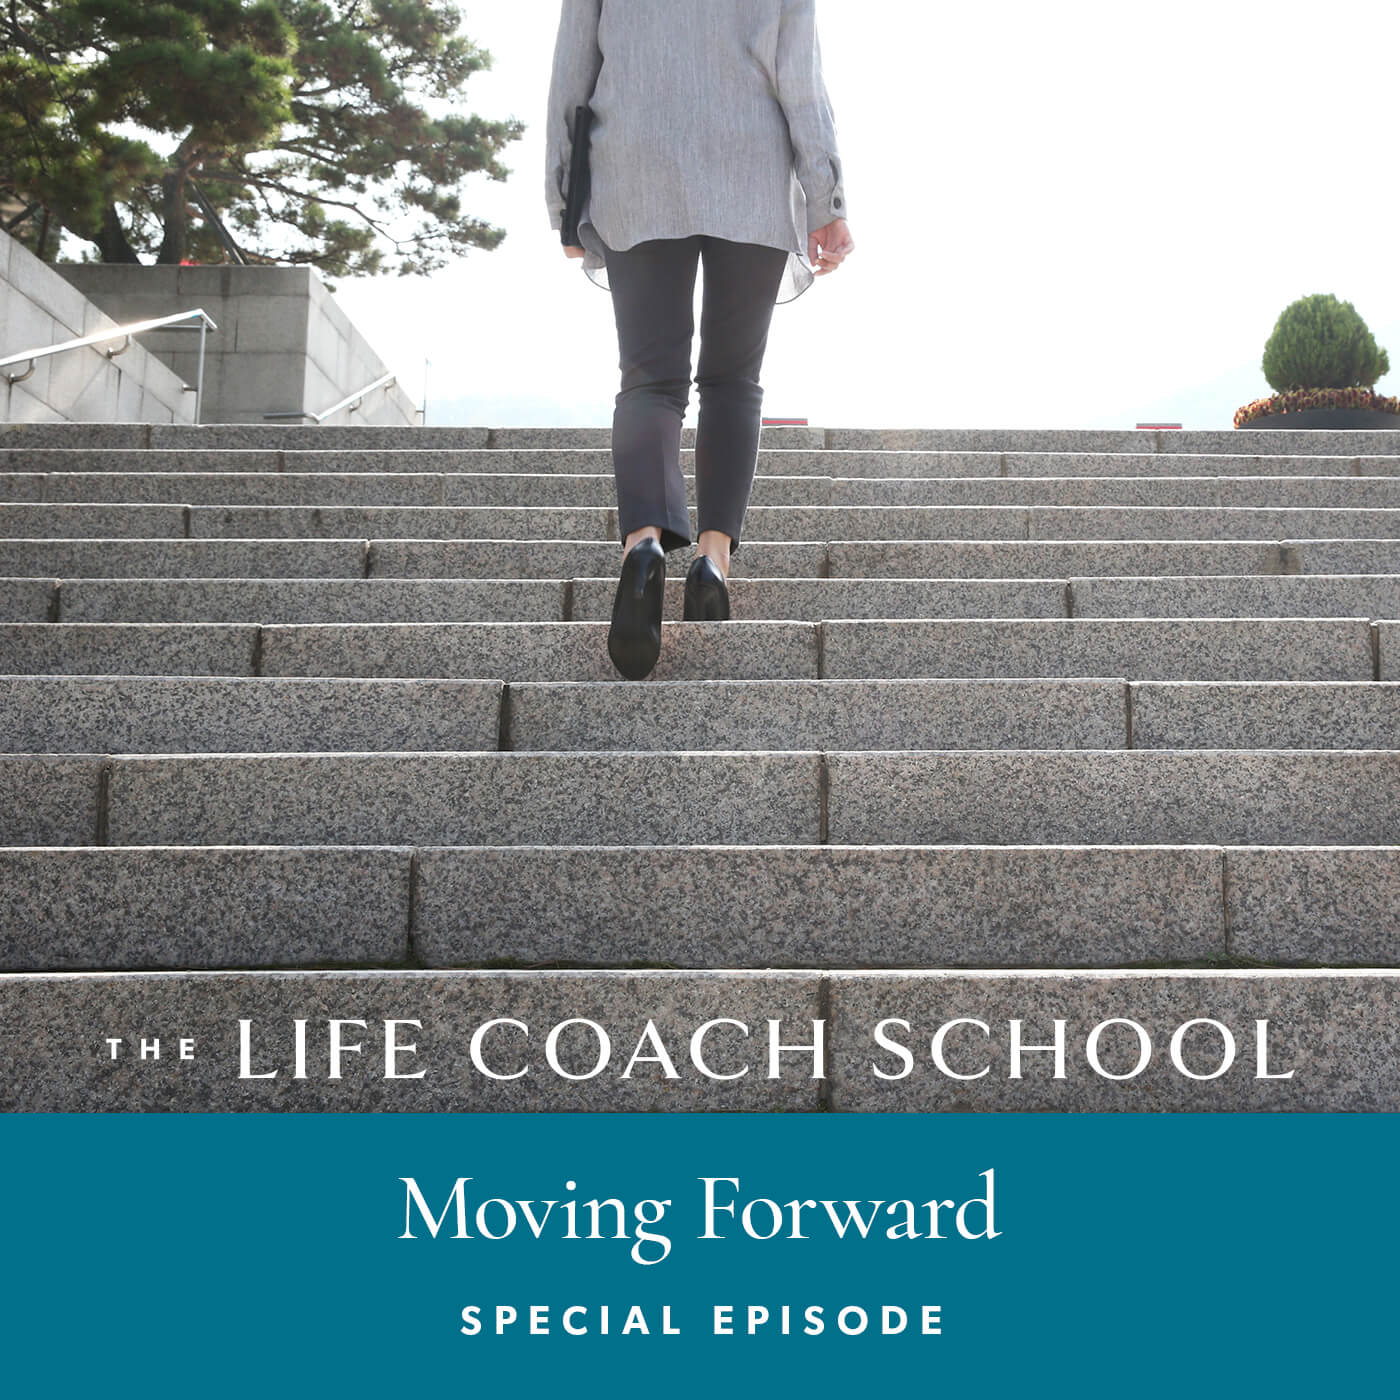 The Life Coach School Podcast with Brooke Castillo | Special Episode | Moving Forward